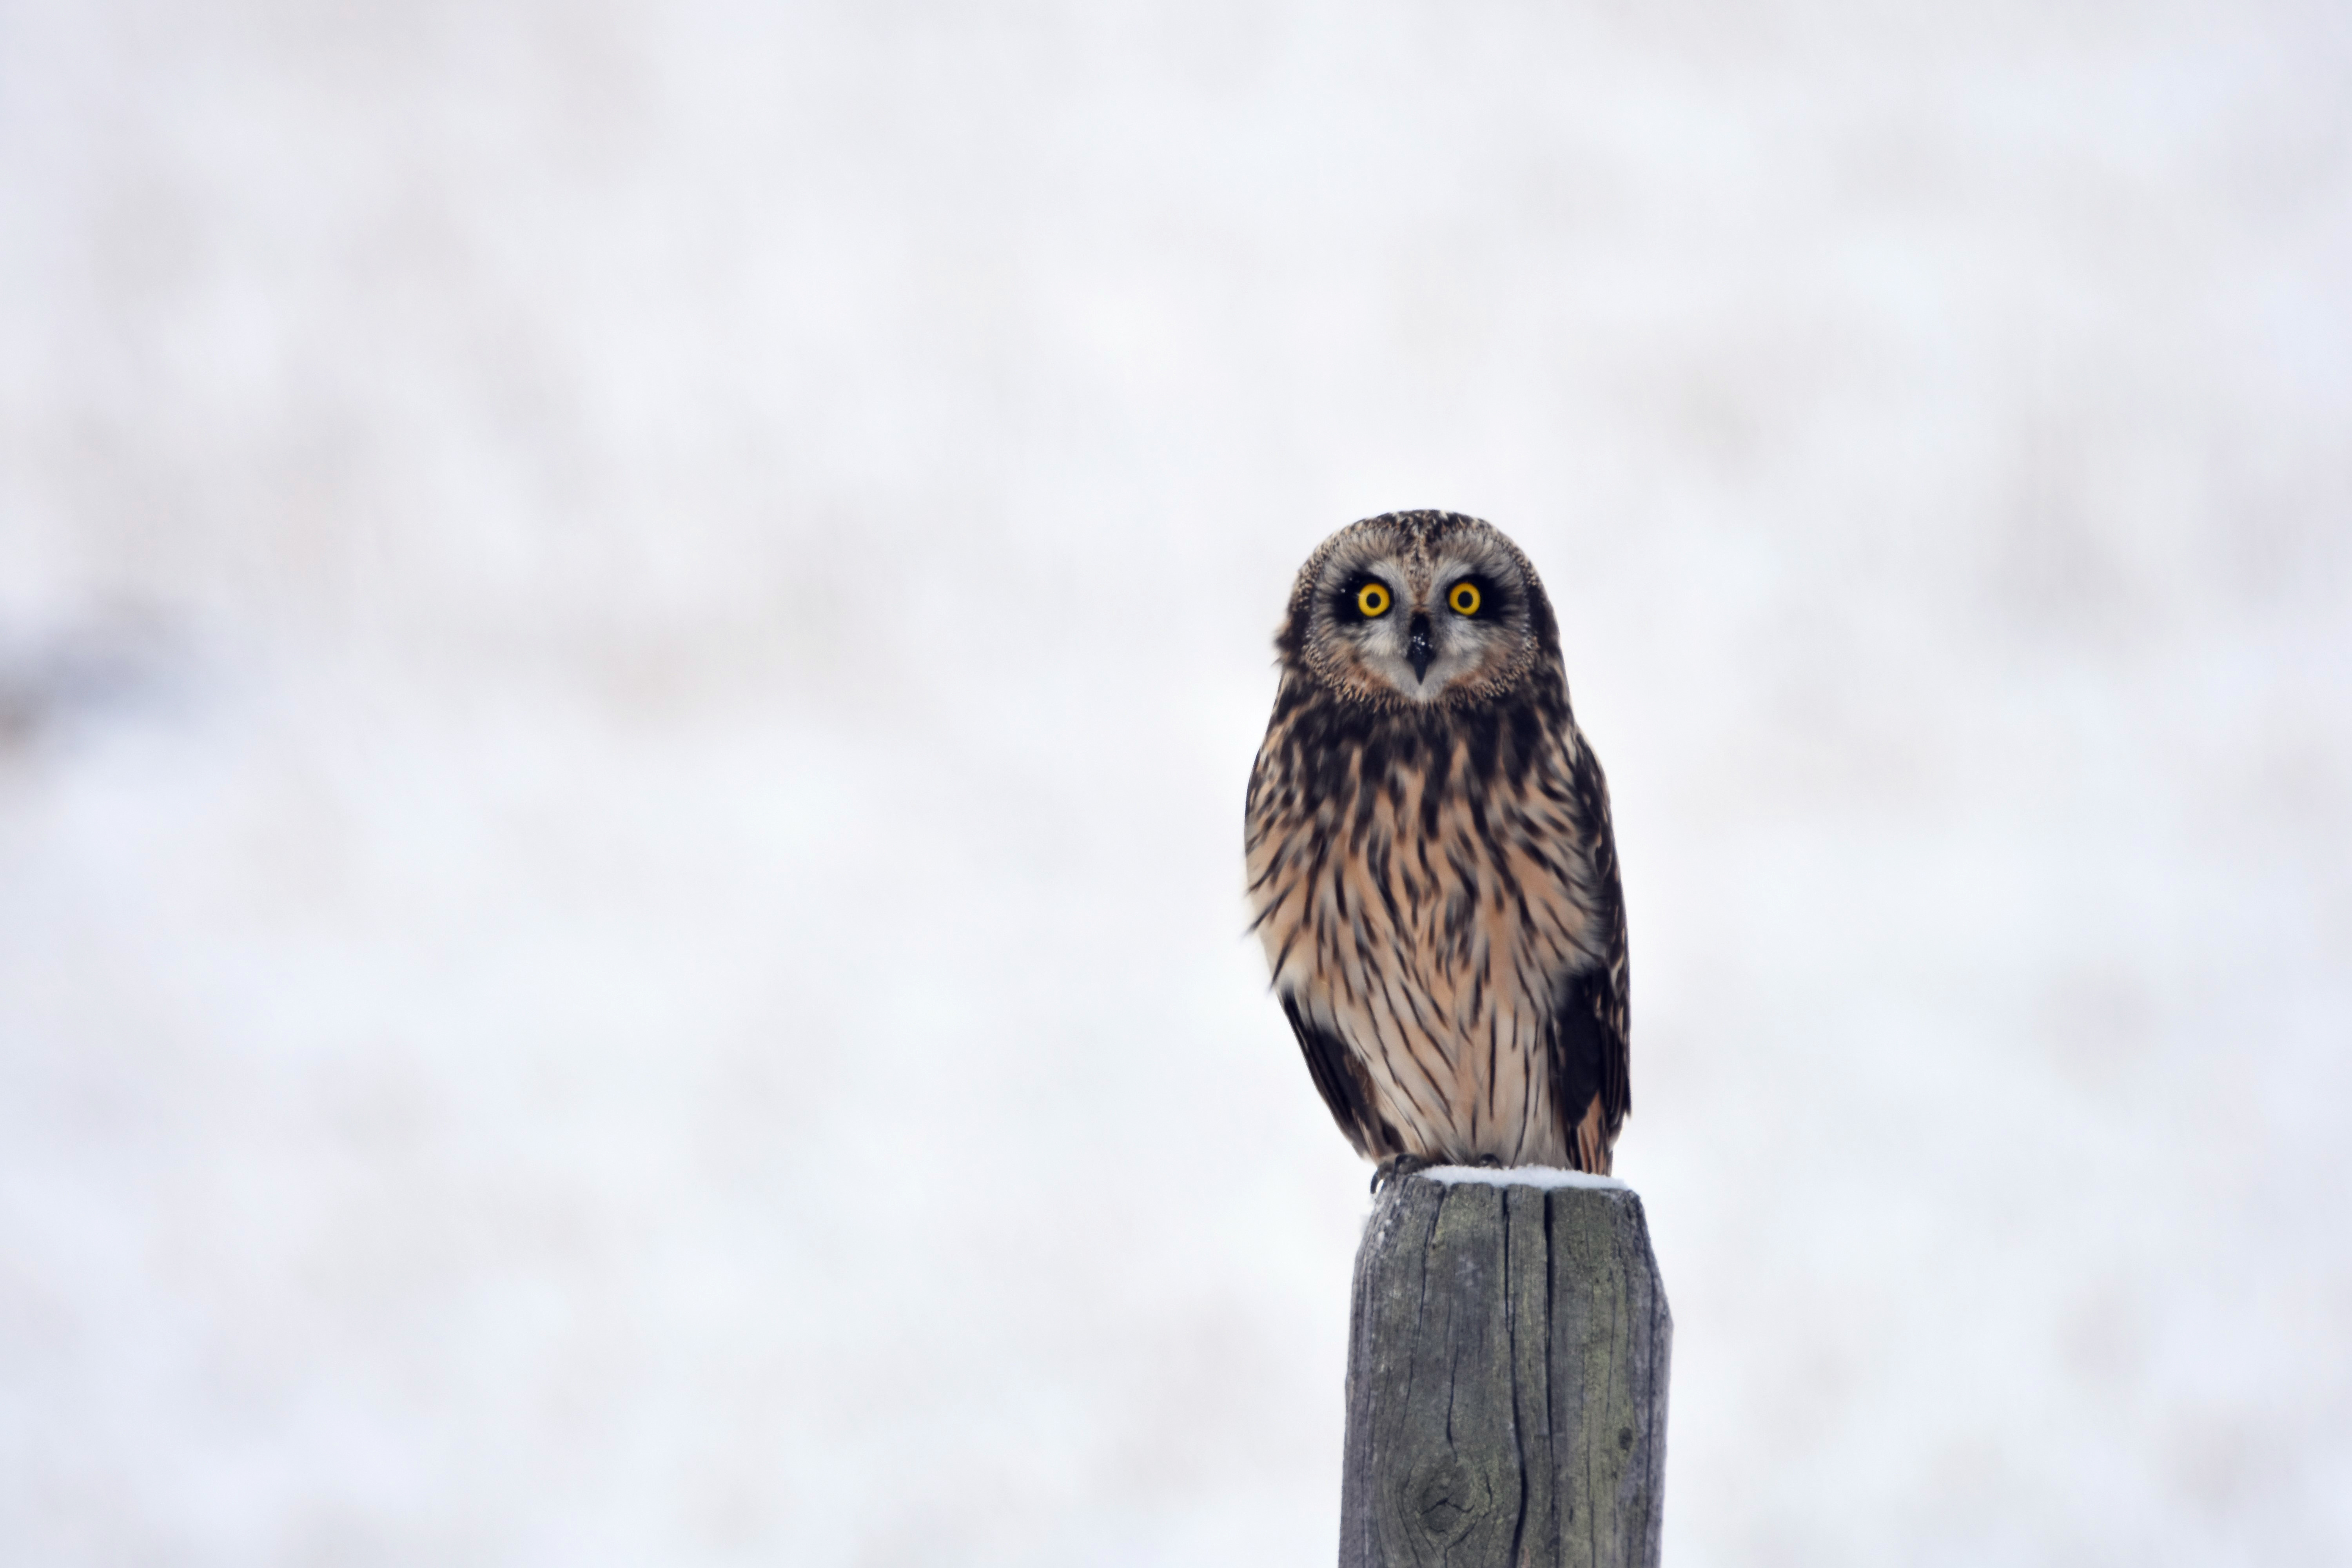 136134 download wallpaper Animals, Owl, Bird, Predator, Sight, Opinion, Stump screensavers and pictures for free